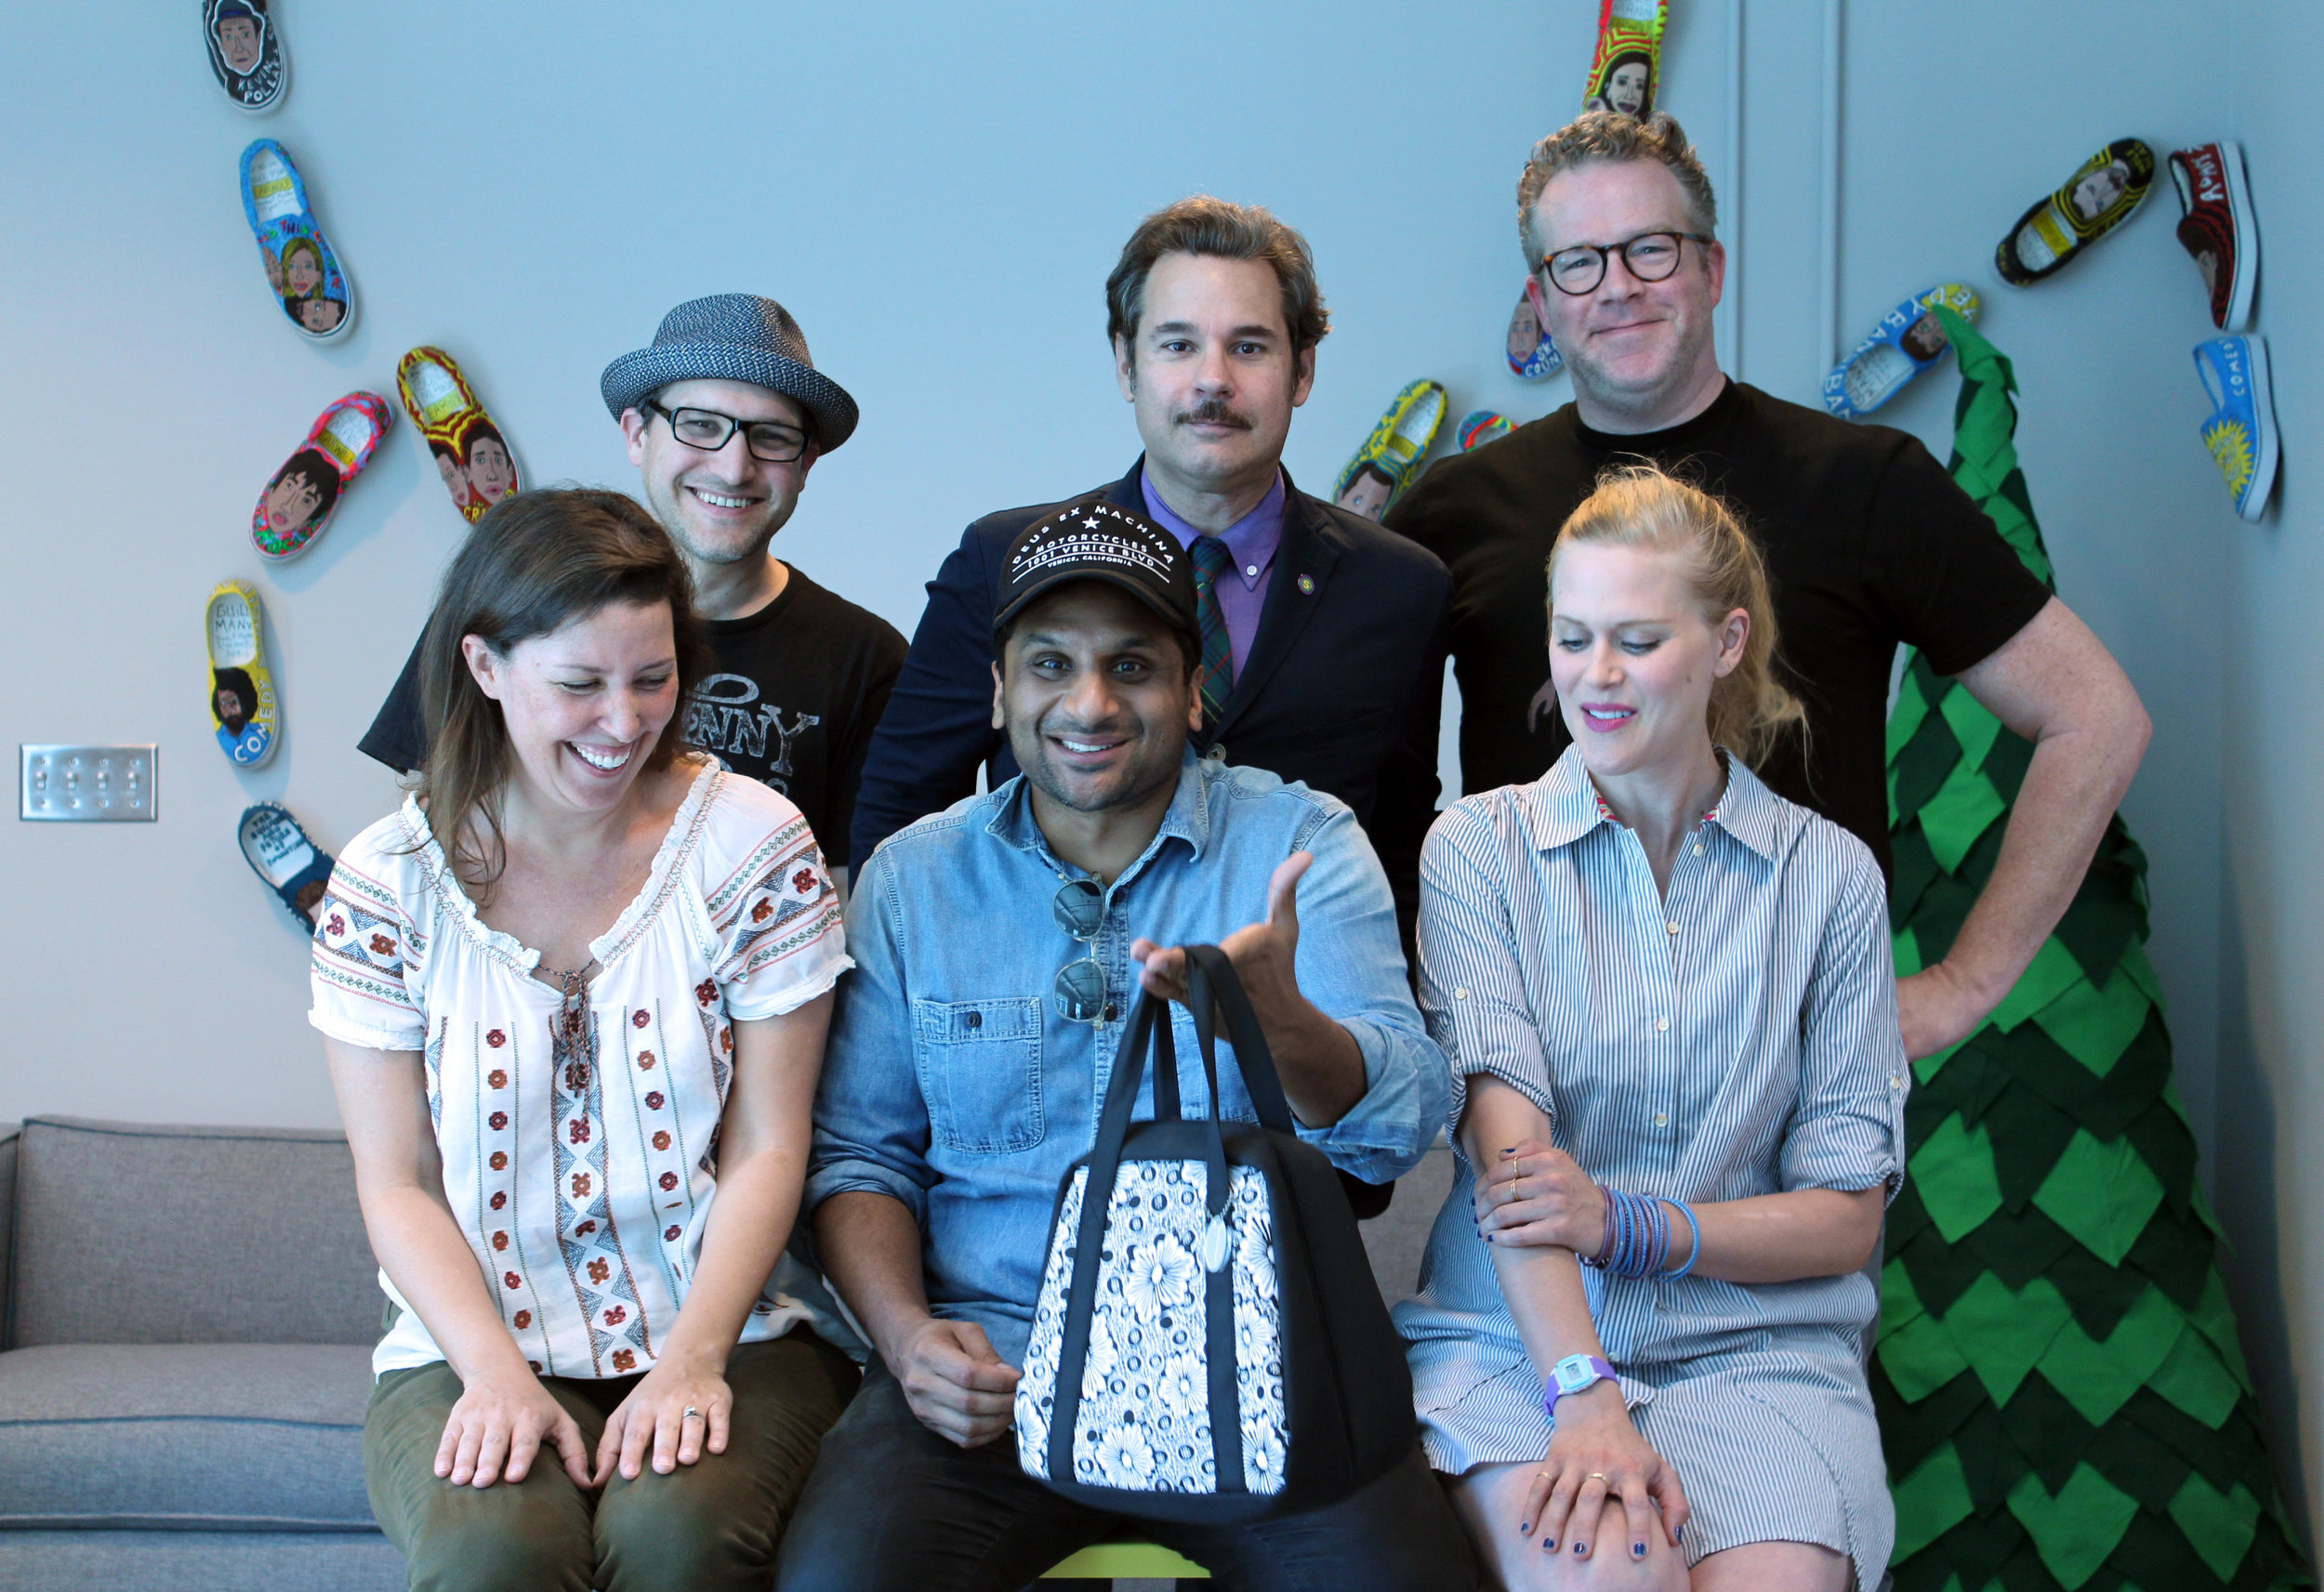 Spontaneanation with Paul F. Tompkins#39 Freeport, Illinois(December 21st, 2015) - Paul F. Tompkins welcomes everyone to unwrap the Christmas gift of a new SPONTANEANATION! This week, Paul's special guest is Ravi Patel of Grandfathered and Meet the Patels! They chat about Ravi's secret girlfriend, what's going on with Mario Lopez, and the difficulty of taking compliments. Paul is then joined by Janet Varney, Chris Tallman, and Jean Villepique to improvise a story set in Freeport, Illinois. And as always, Eban (only the best) Schletter scores it all on piano!